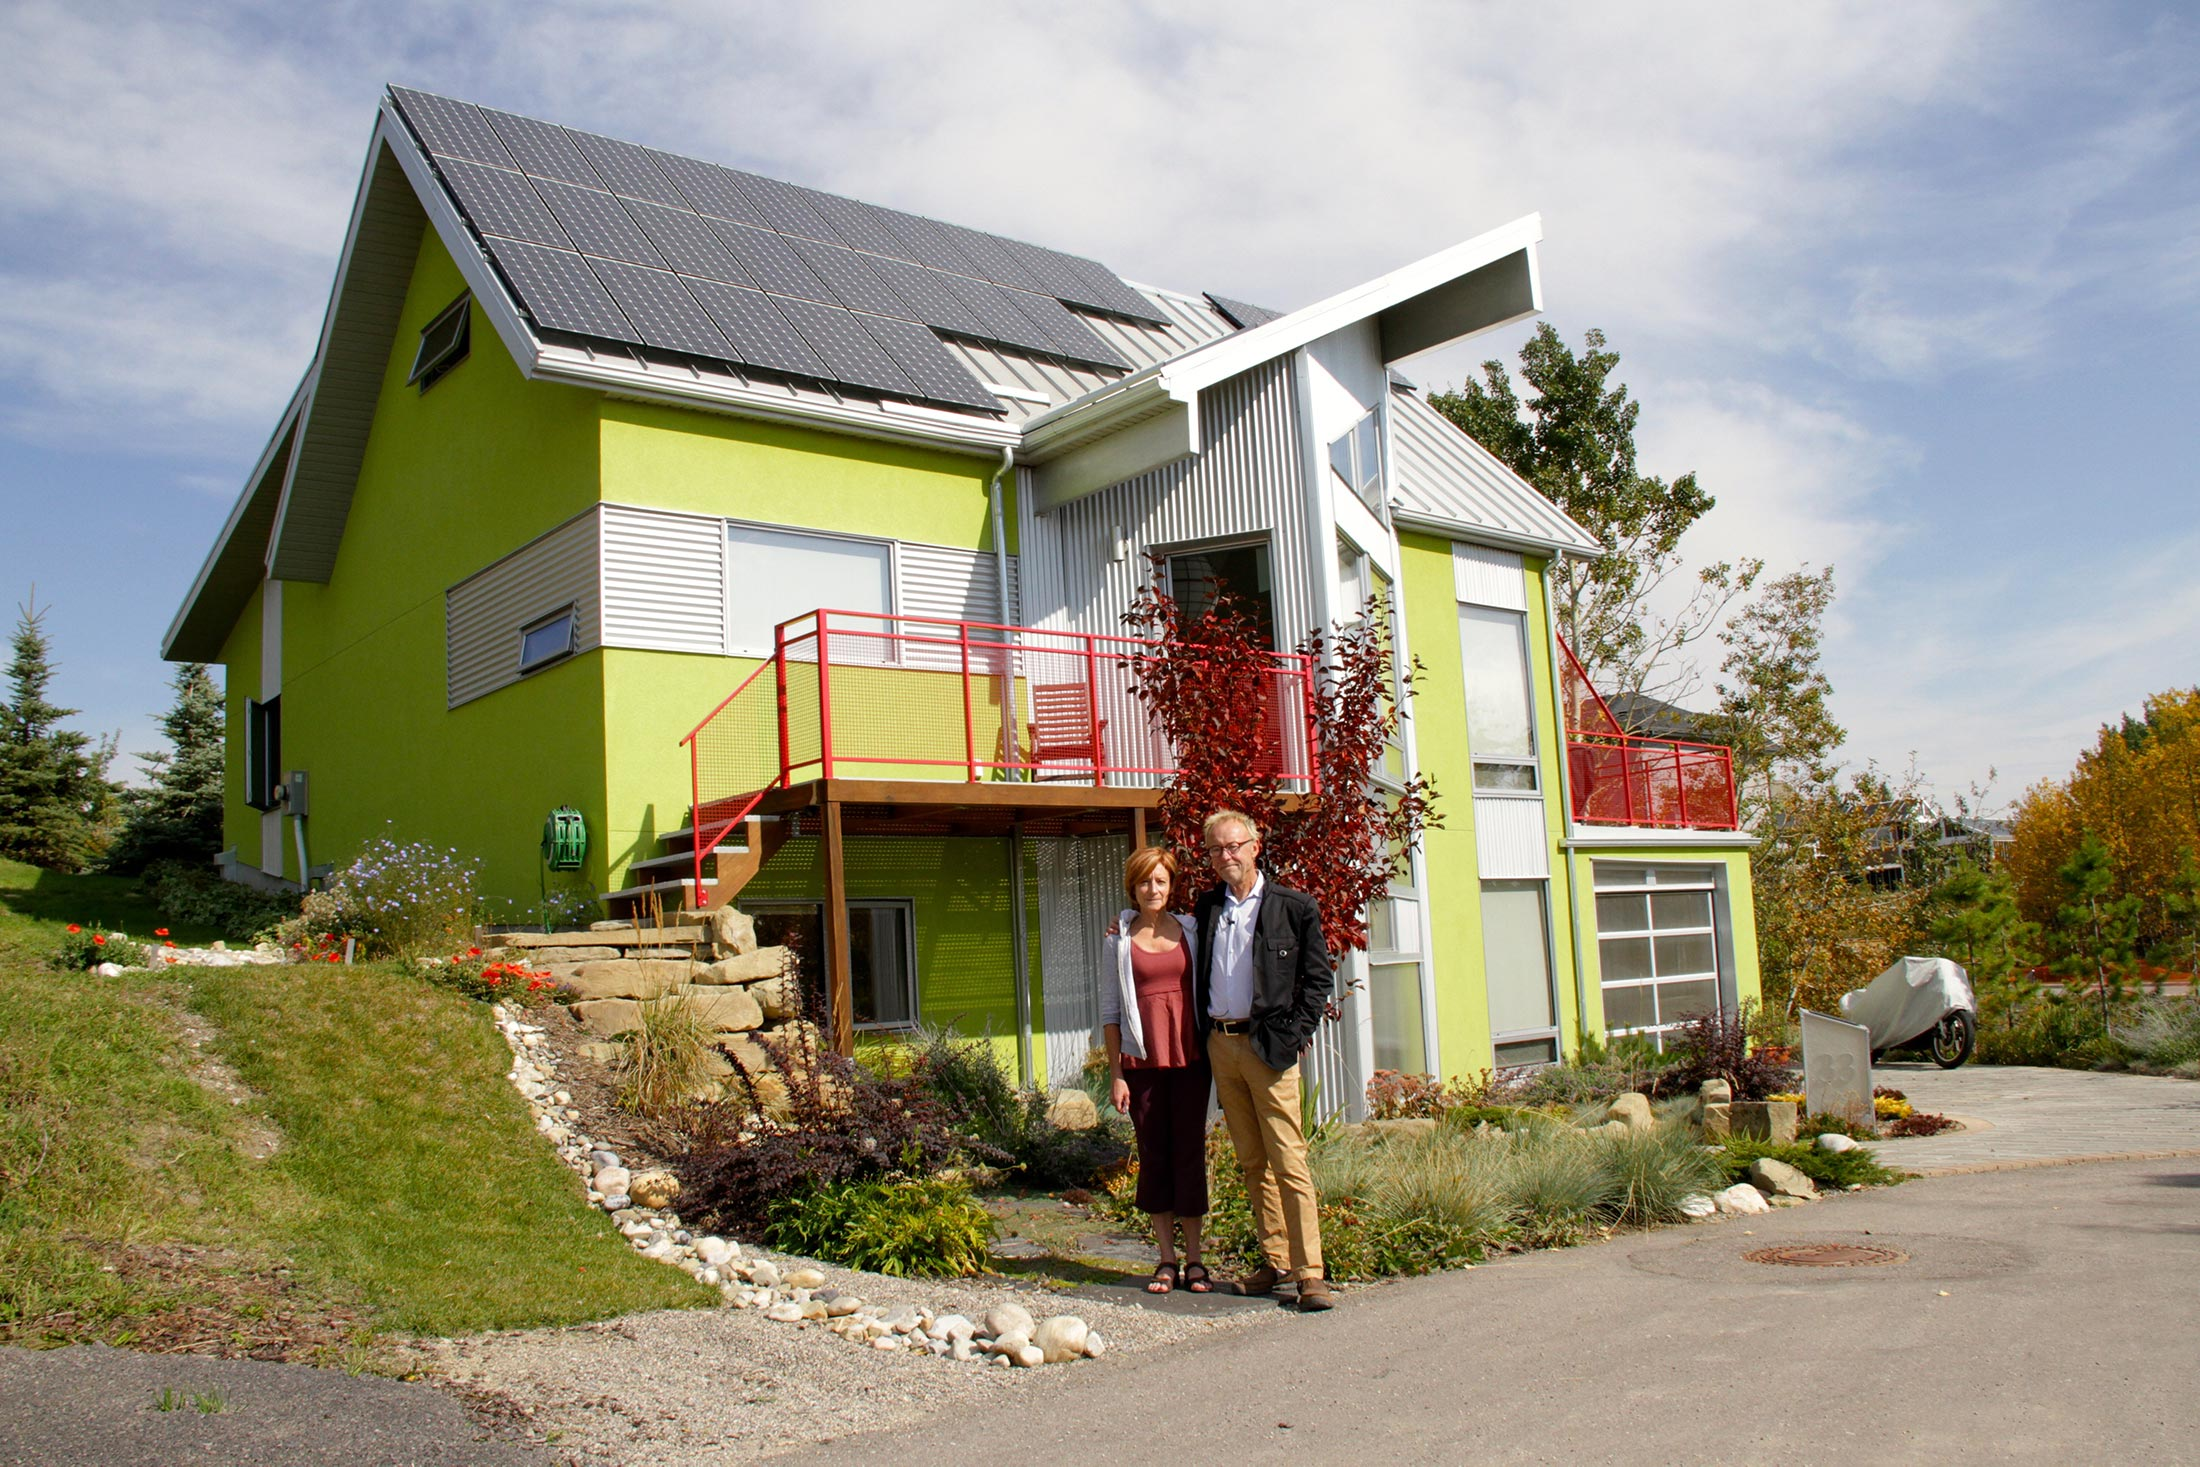 Homeowners stand in front of their solar powered home. © David Dodge, made available under a Creative Commons 2.0 license.